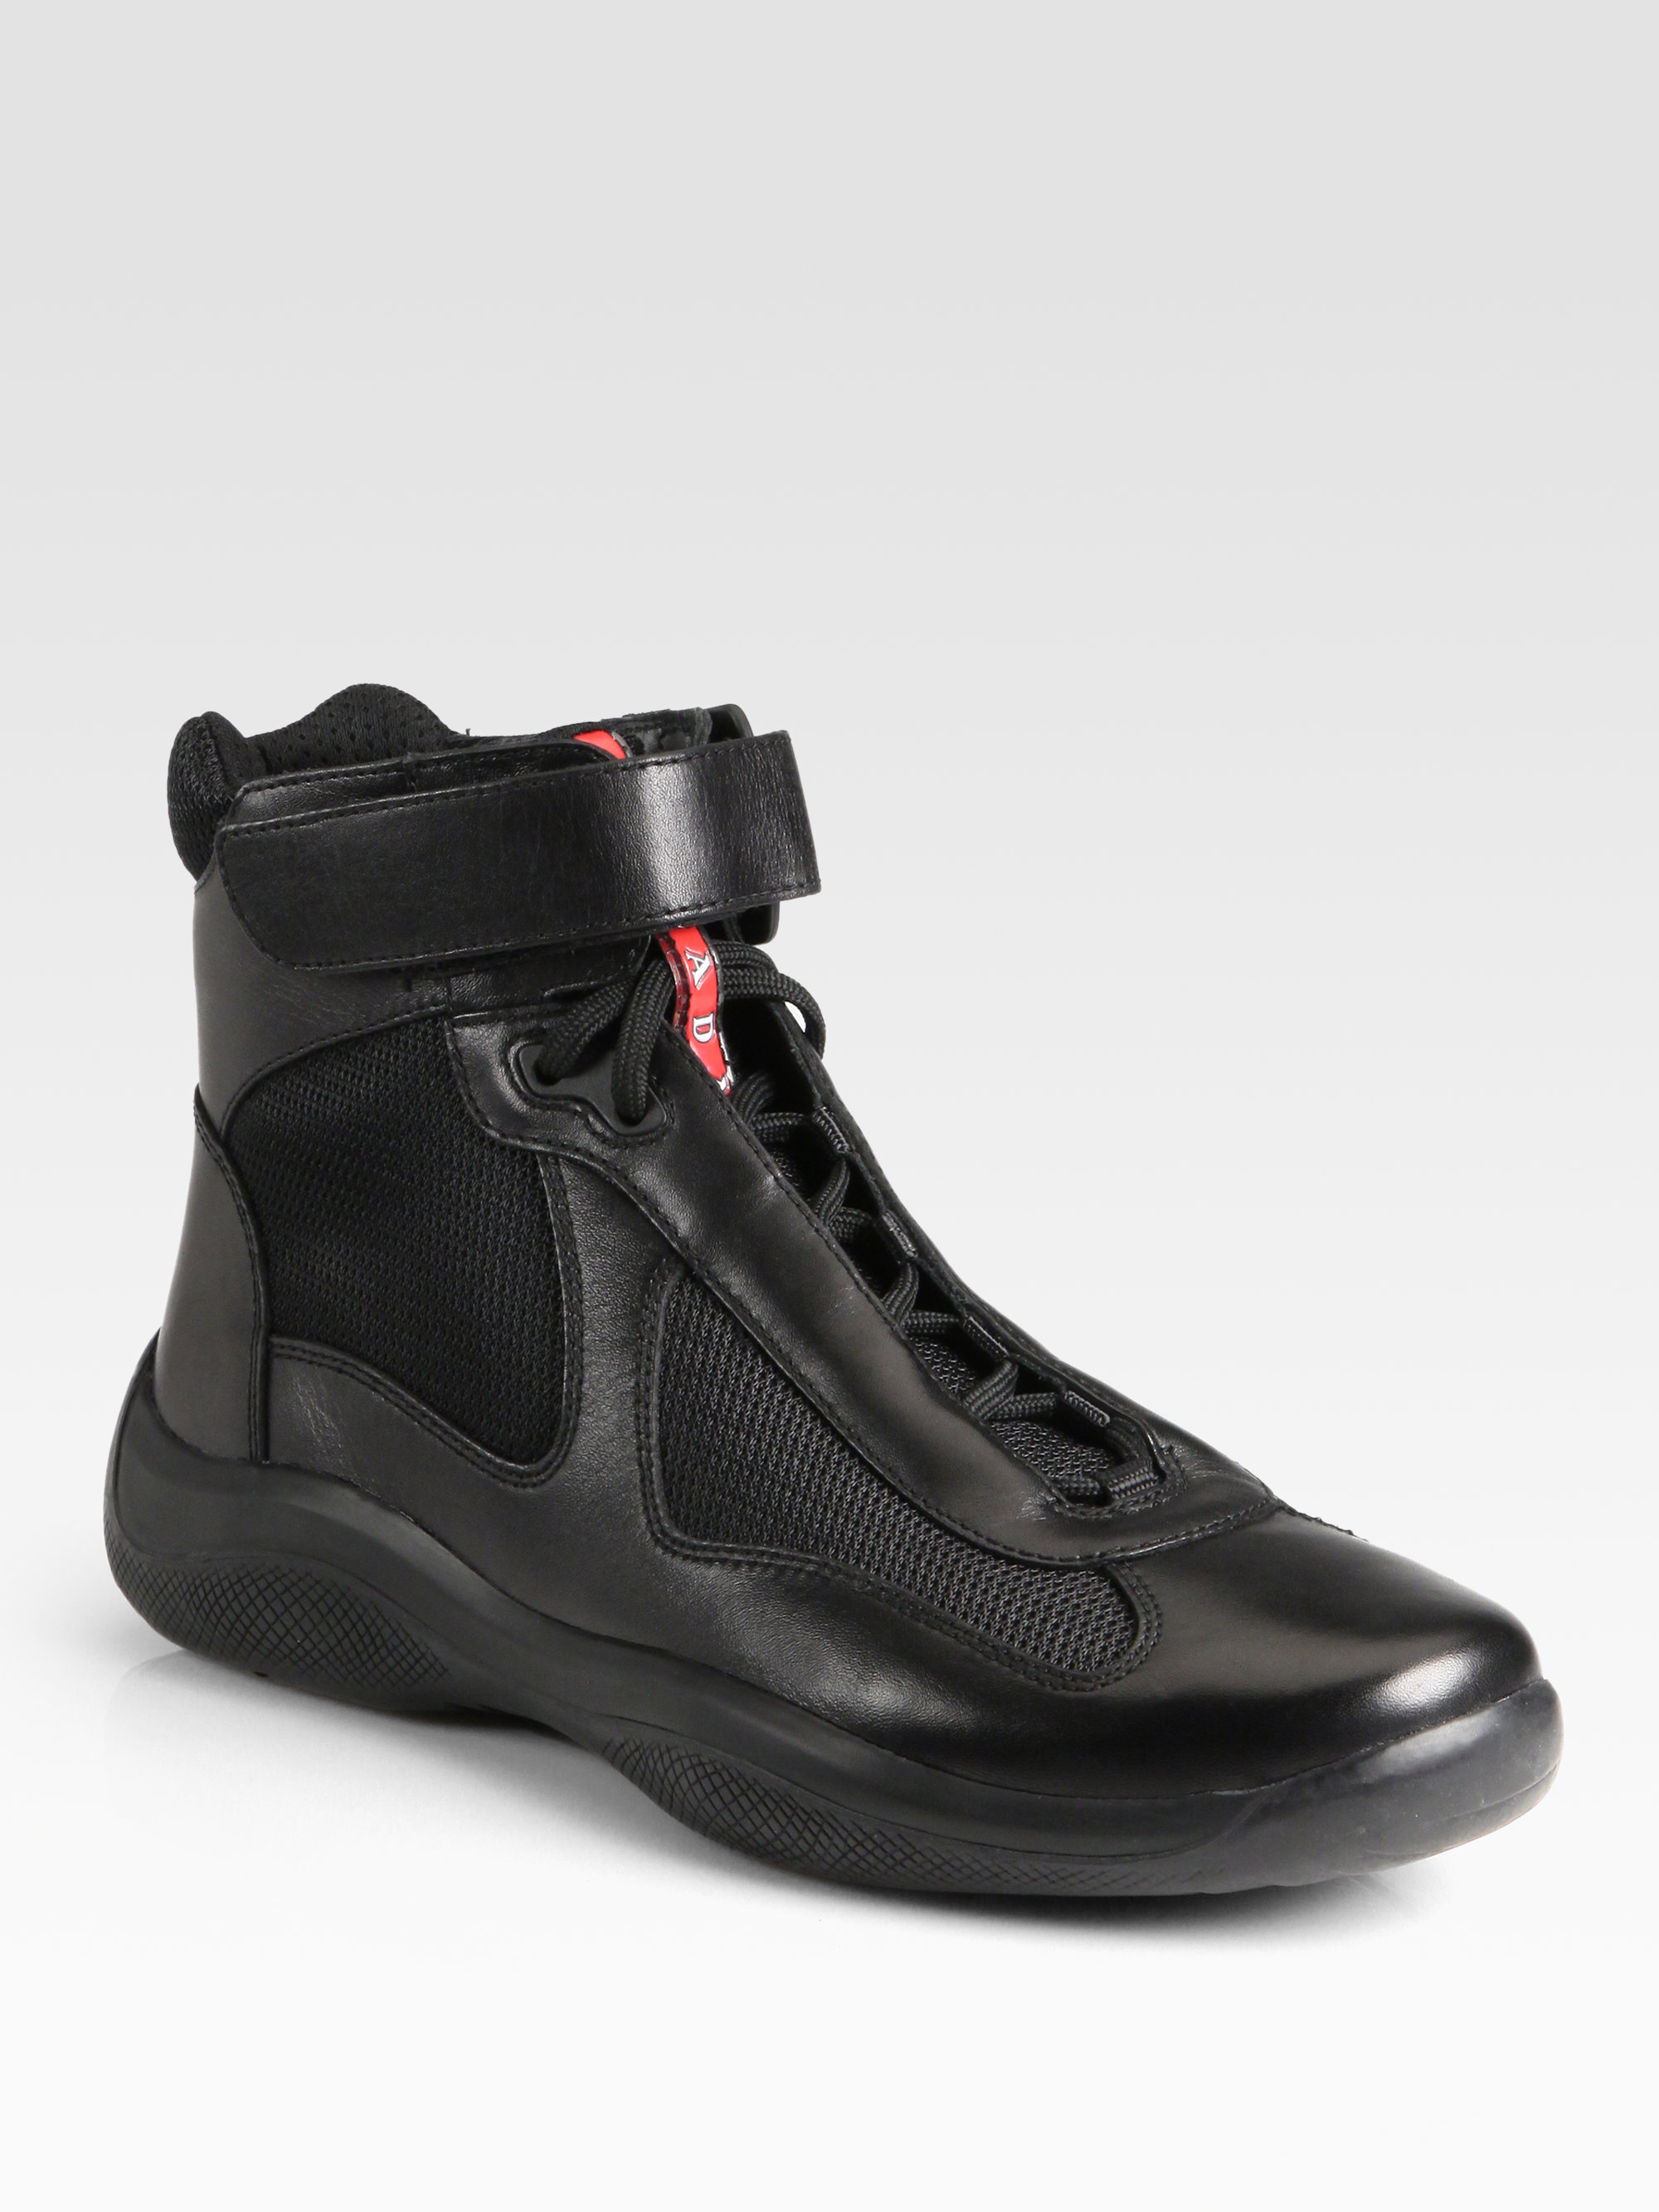 11adbbb343 ... order lyst prada sneakers avenue ankle boots silver inserts in black  89724 591e7